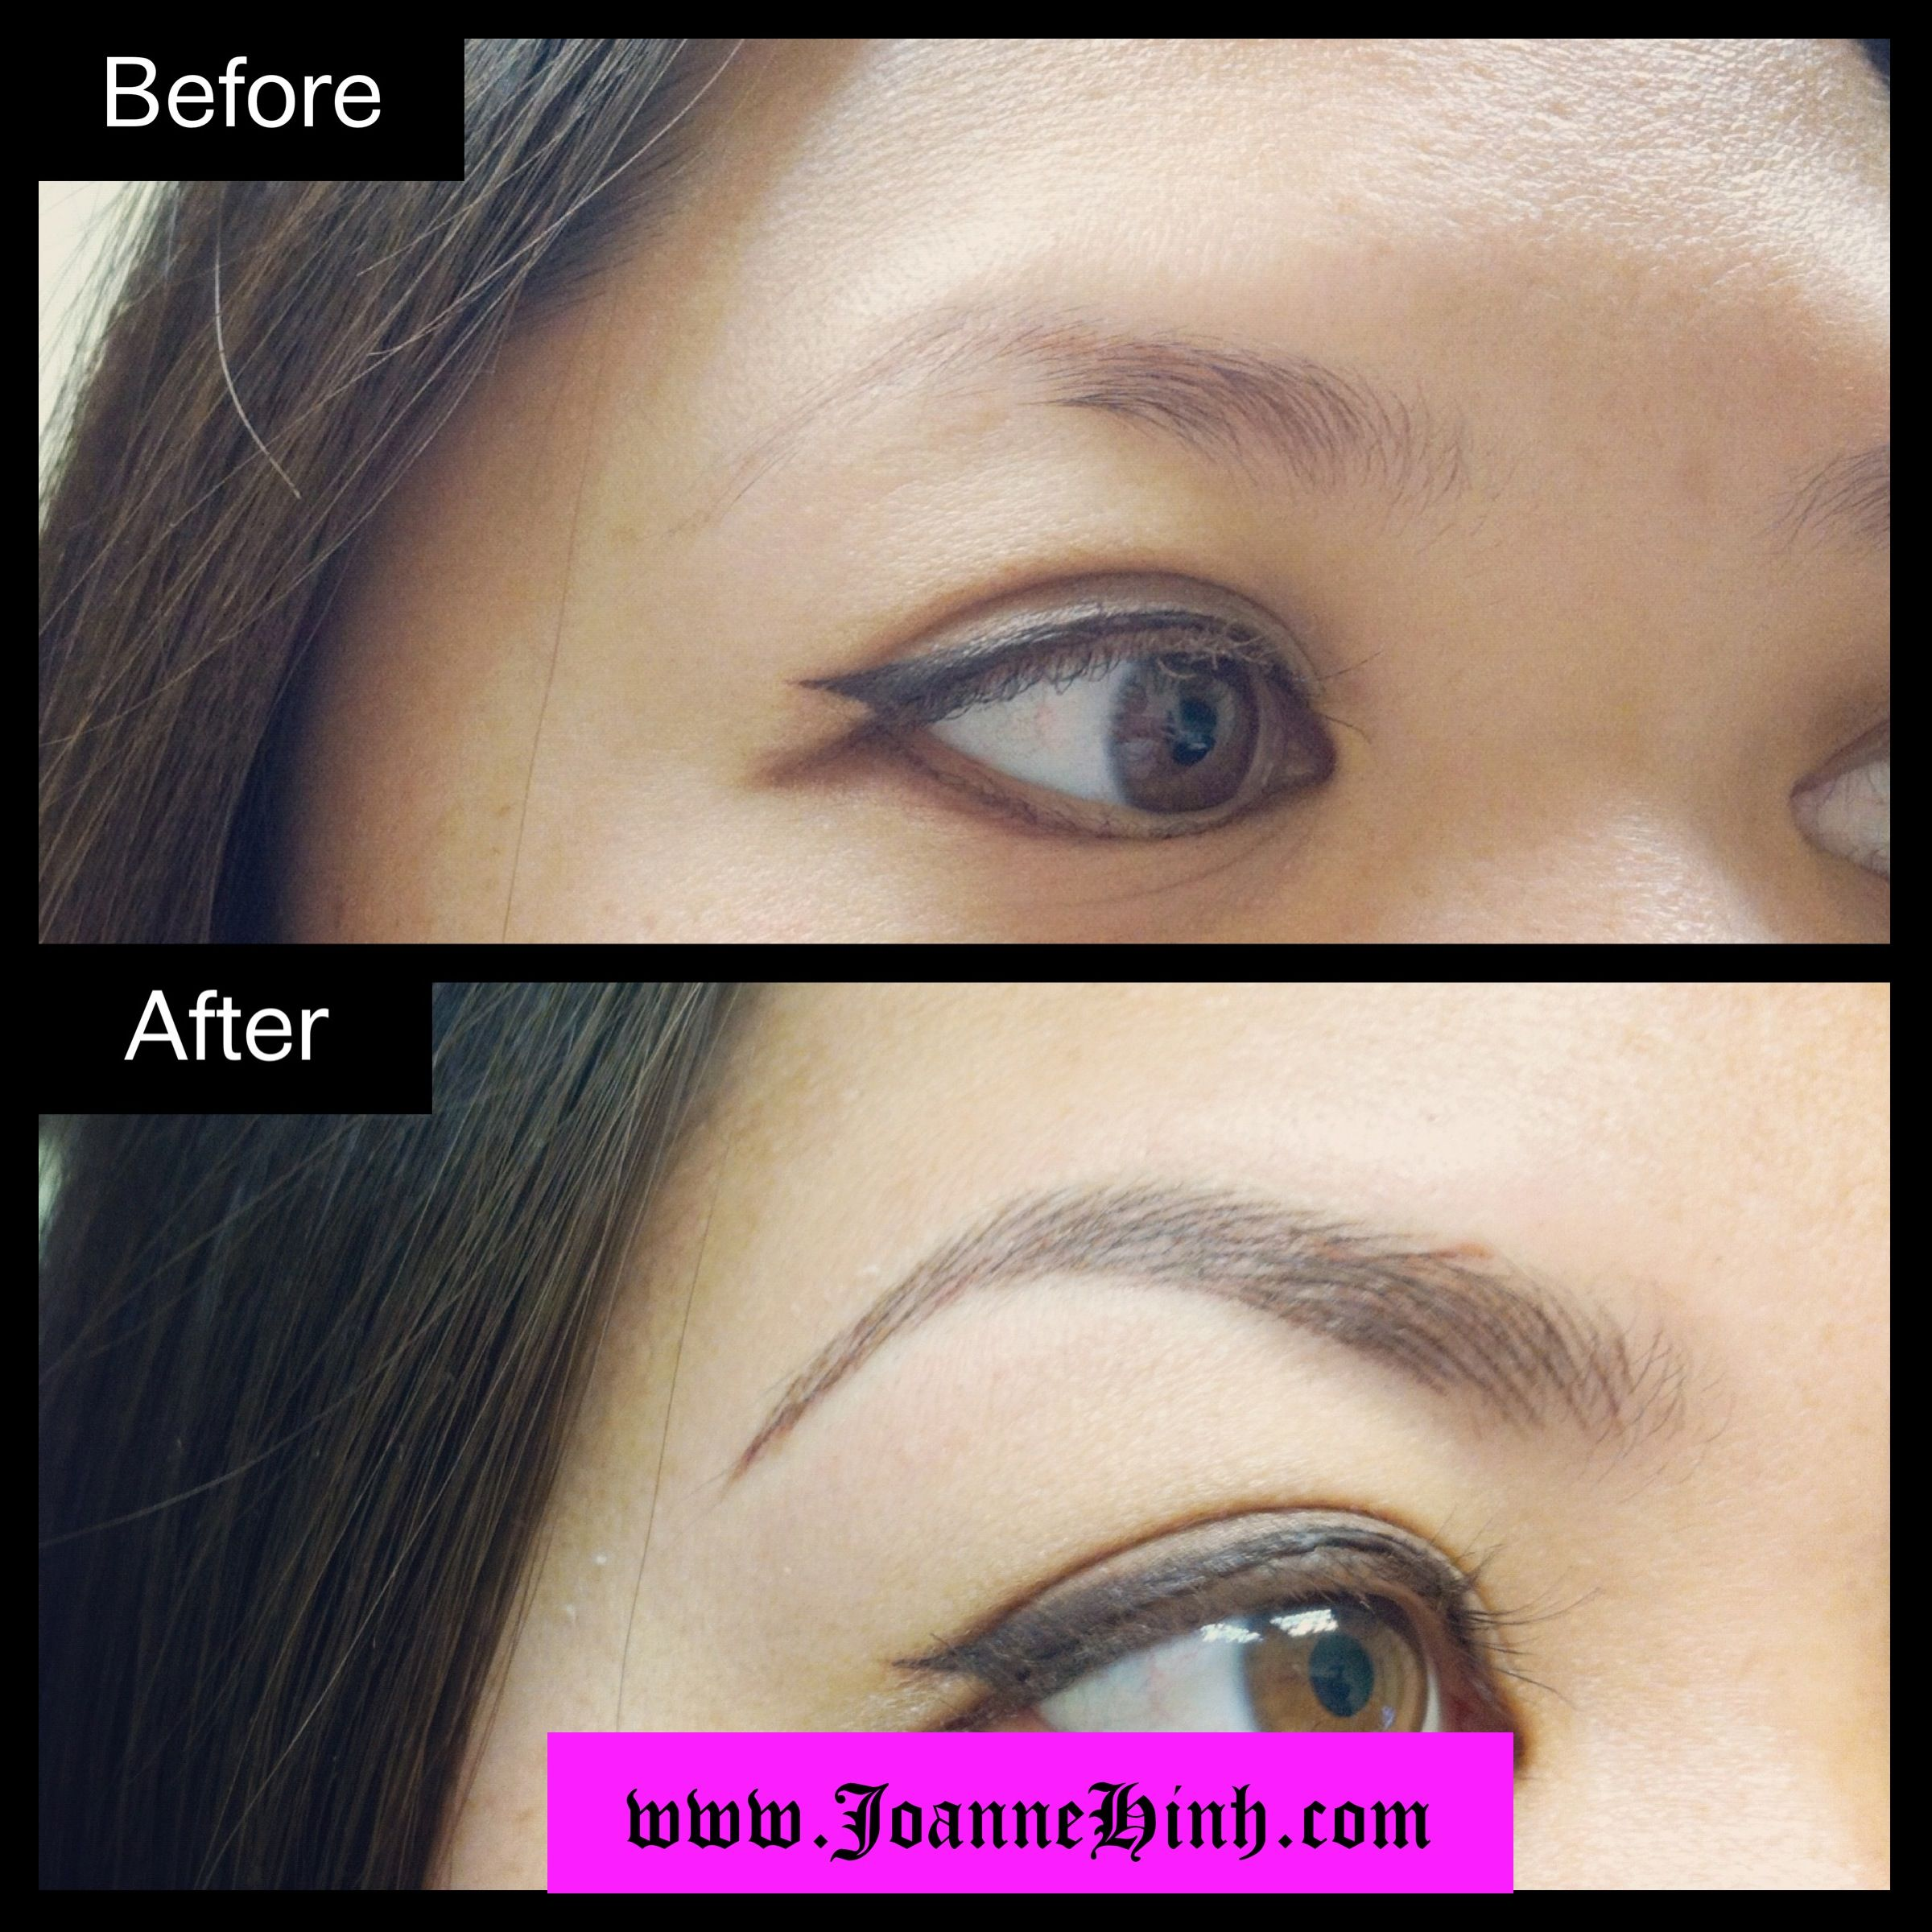 Hairstroke Eyebrow Embroidery by Joanne Hinh. Brow embroidery ...